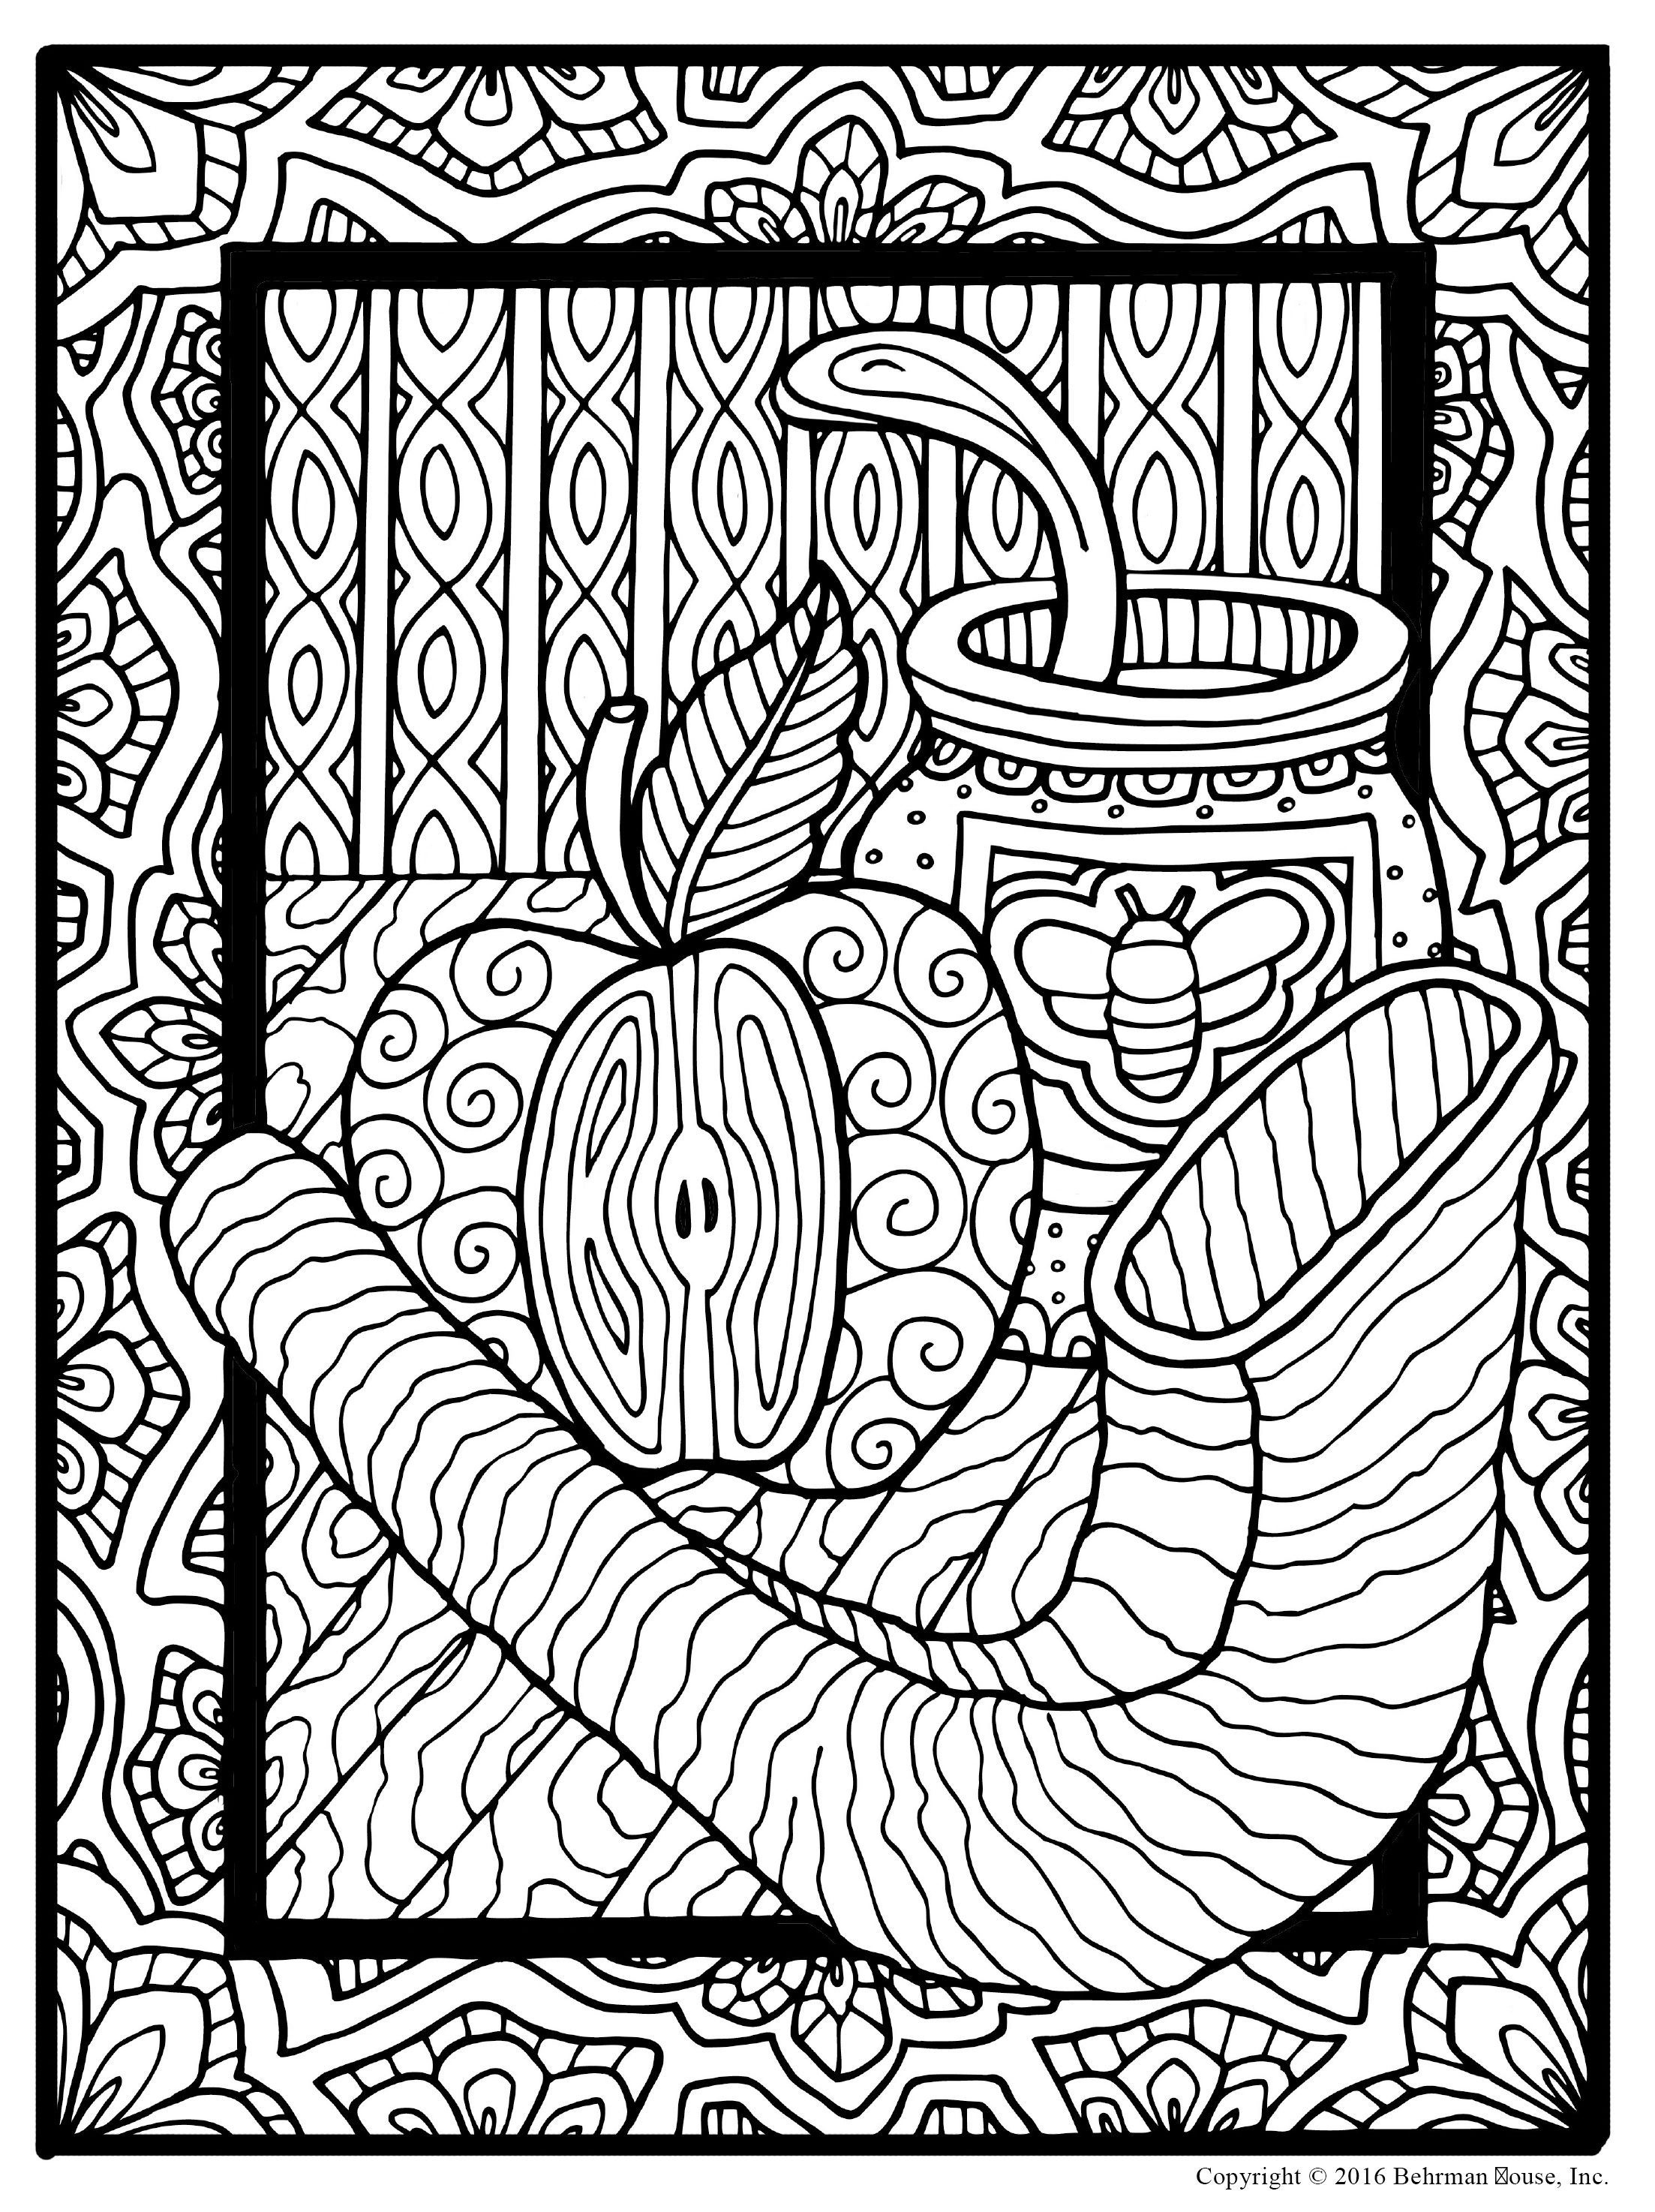 From Shalom Coloring A Jewish Coloring Book For Grown Ups